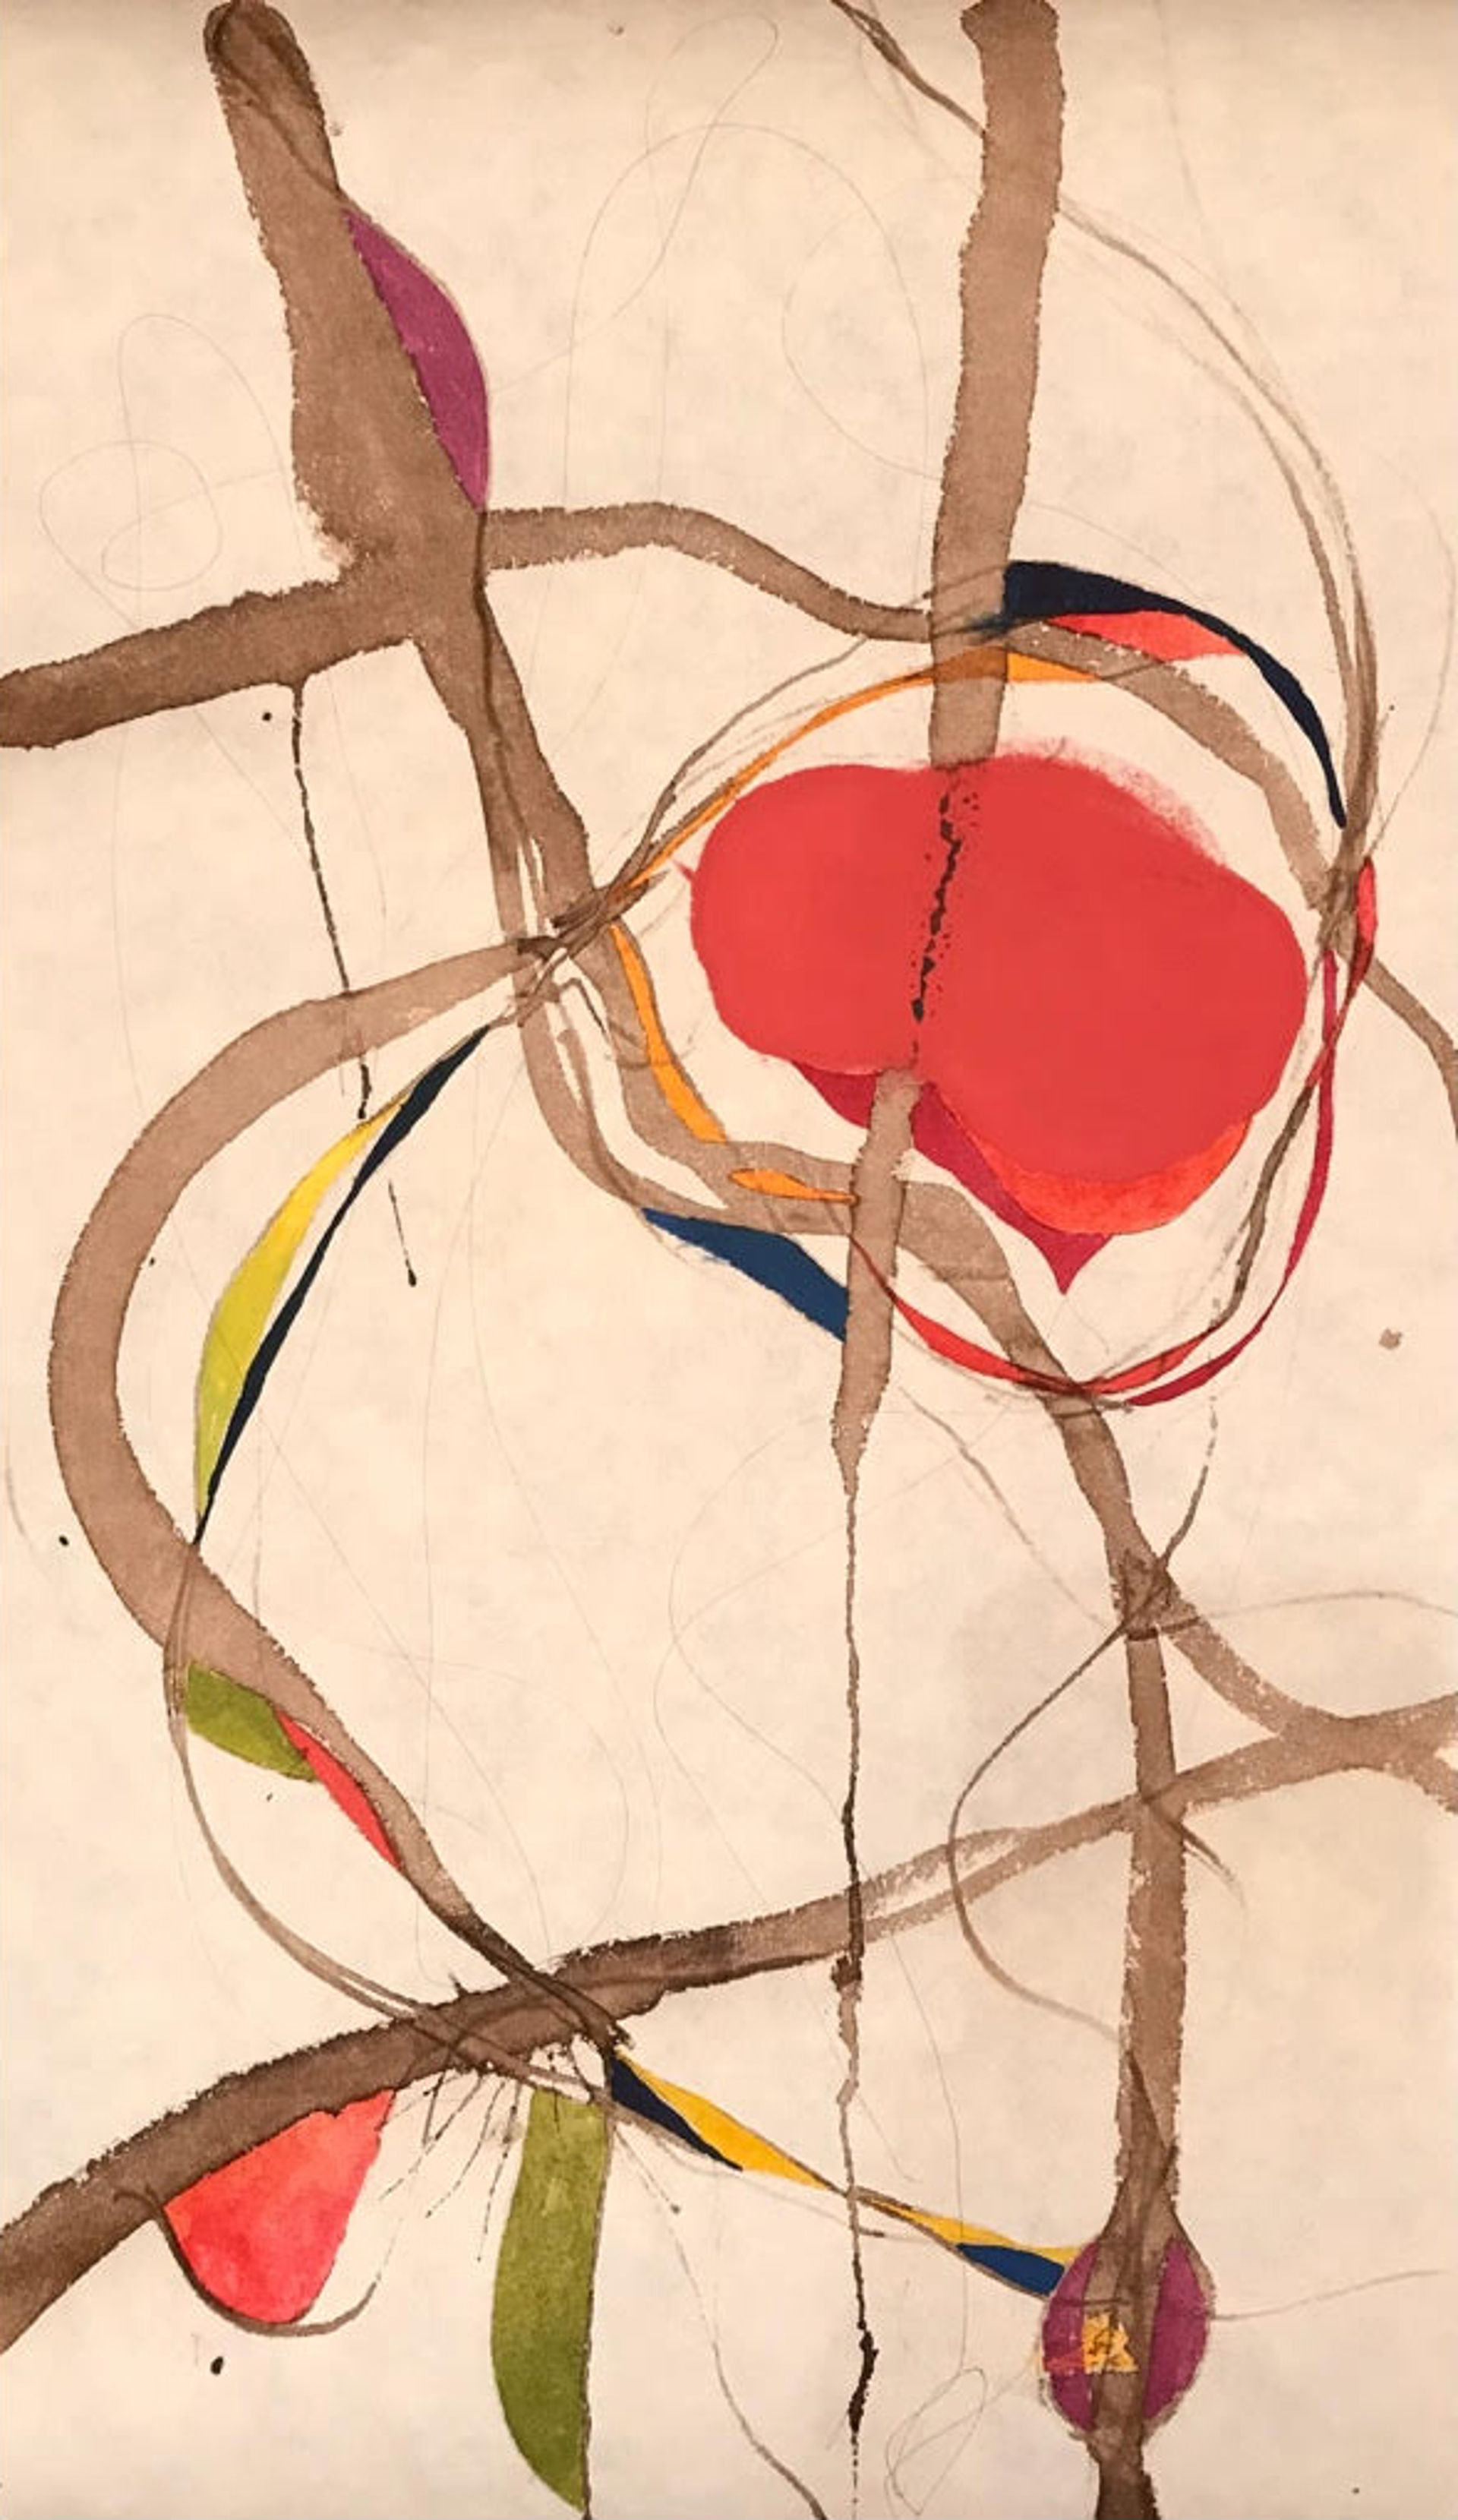 Untitled 6 by Tracey Adams